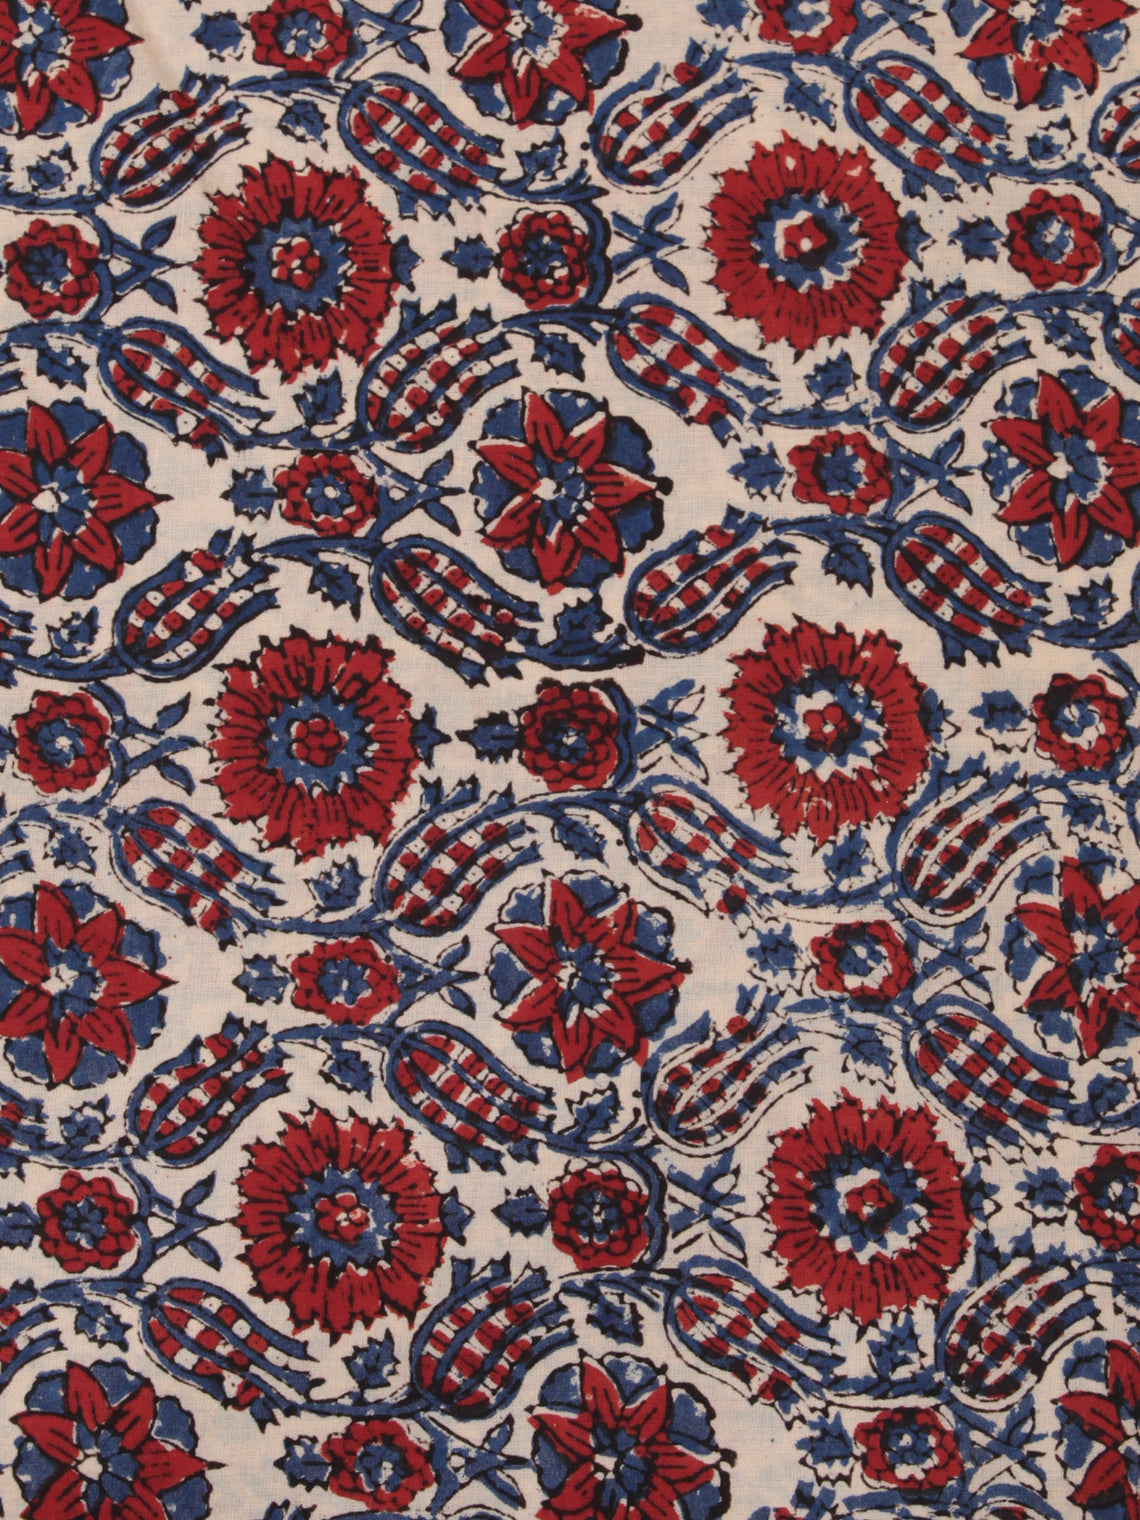 OffWhite Red Indigo Hand Block Printed Cotton Fabric Per Meter - F001F2465